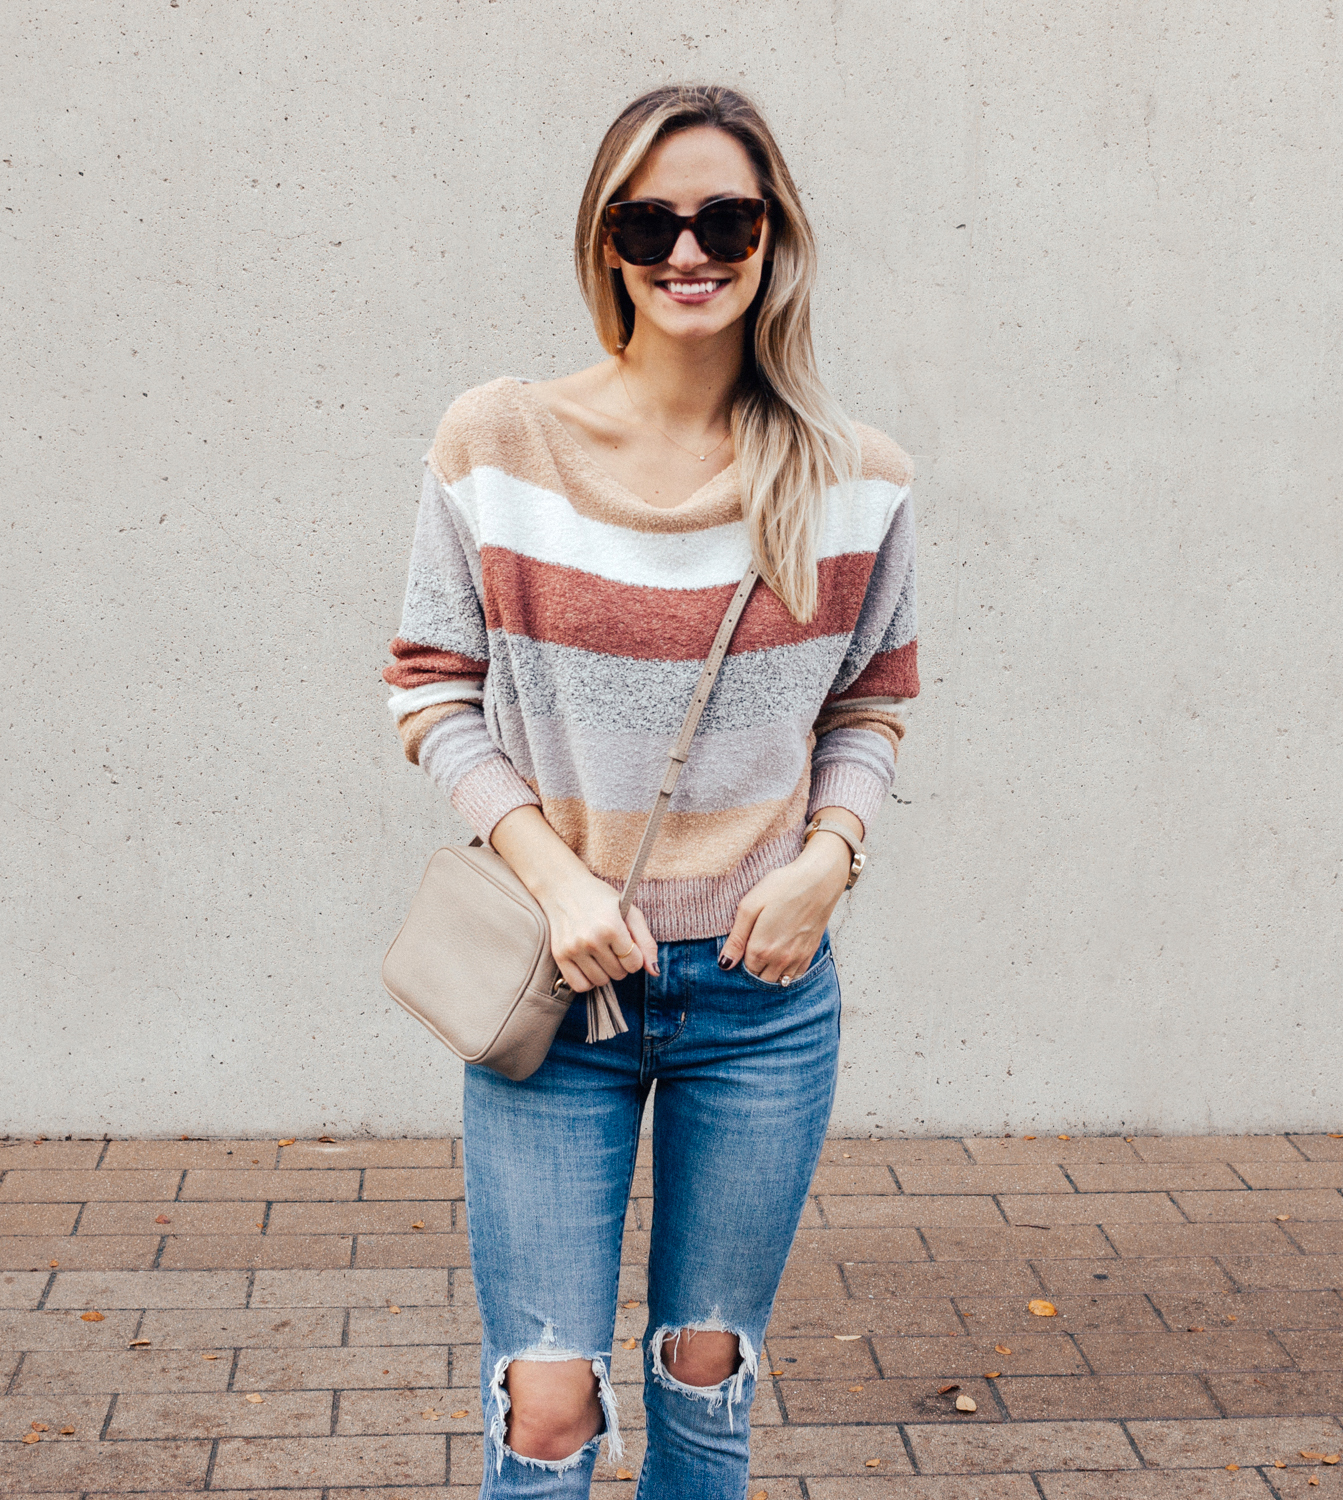 livvyland-blog-olivia-watson-free-people-blush-beige-tan-sweater-tassel-slides-cozy-layers-9